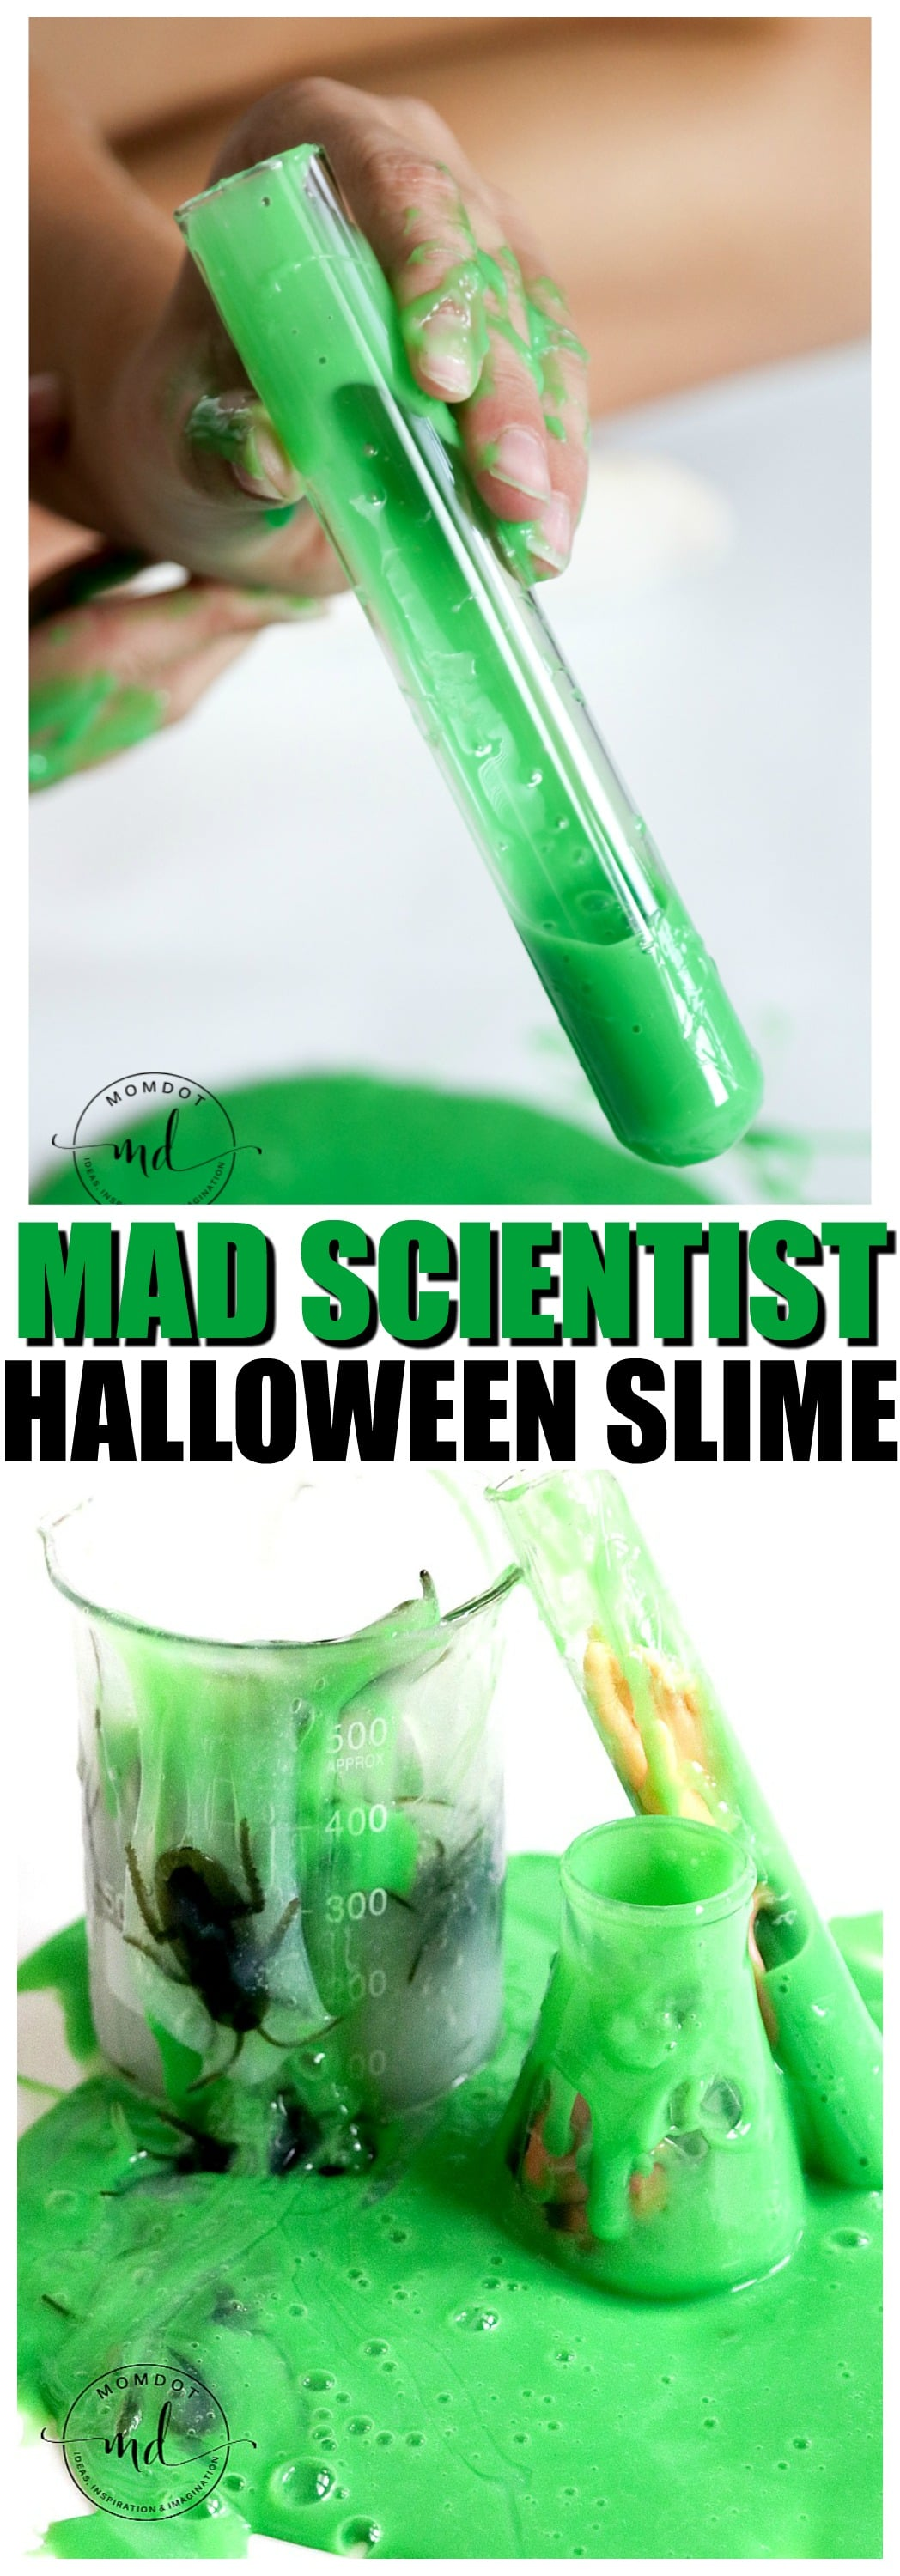 Halloween Slime | Mad Scientist Halloween Slime Tutorial | Halloween Slime #slime #howtomakeslime #diy #fallcrafts